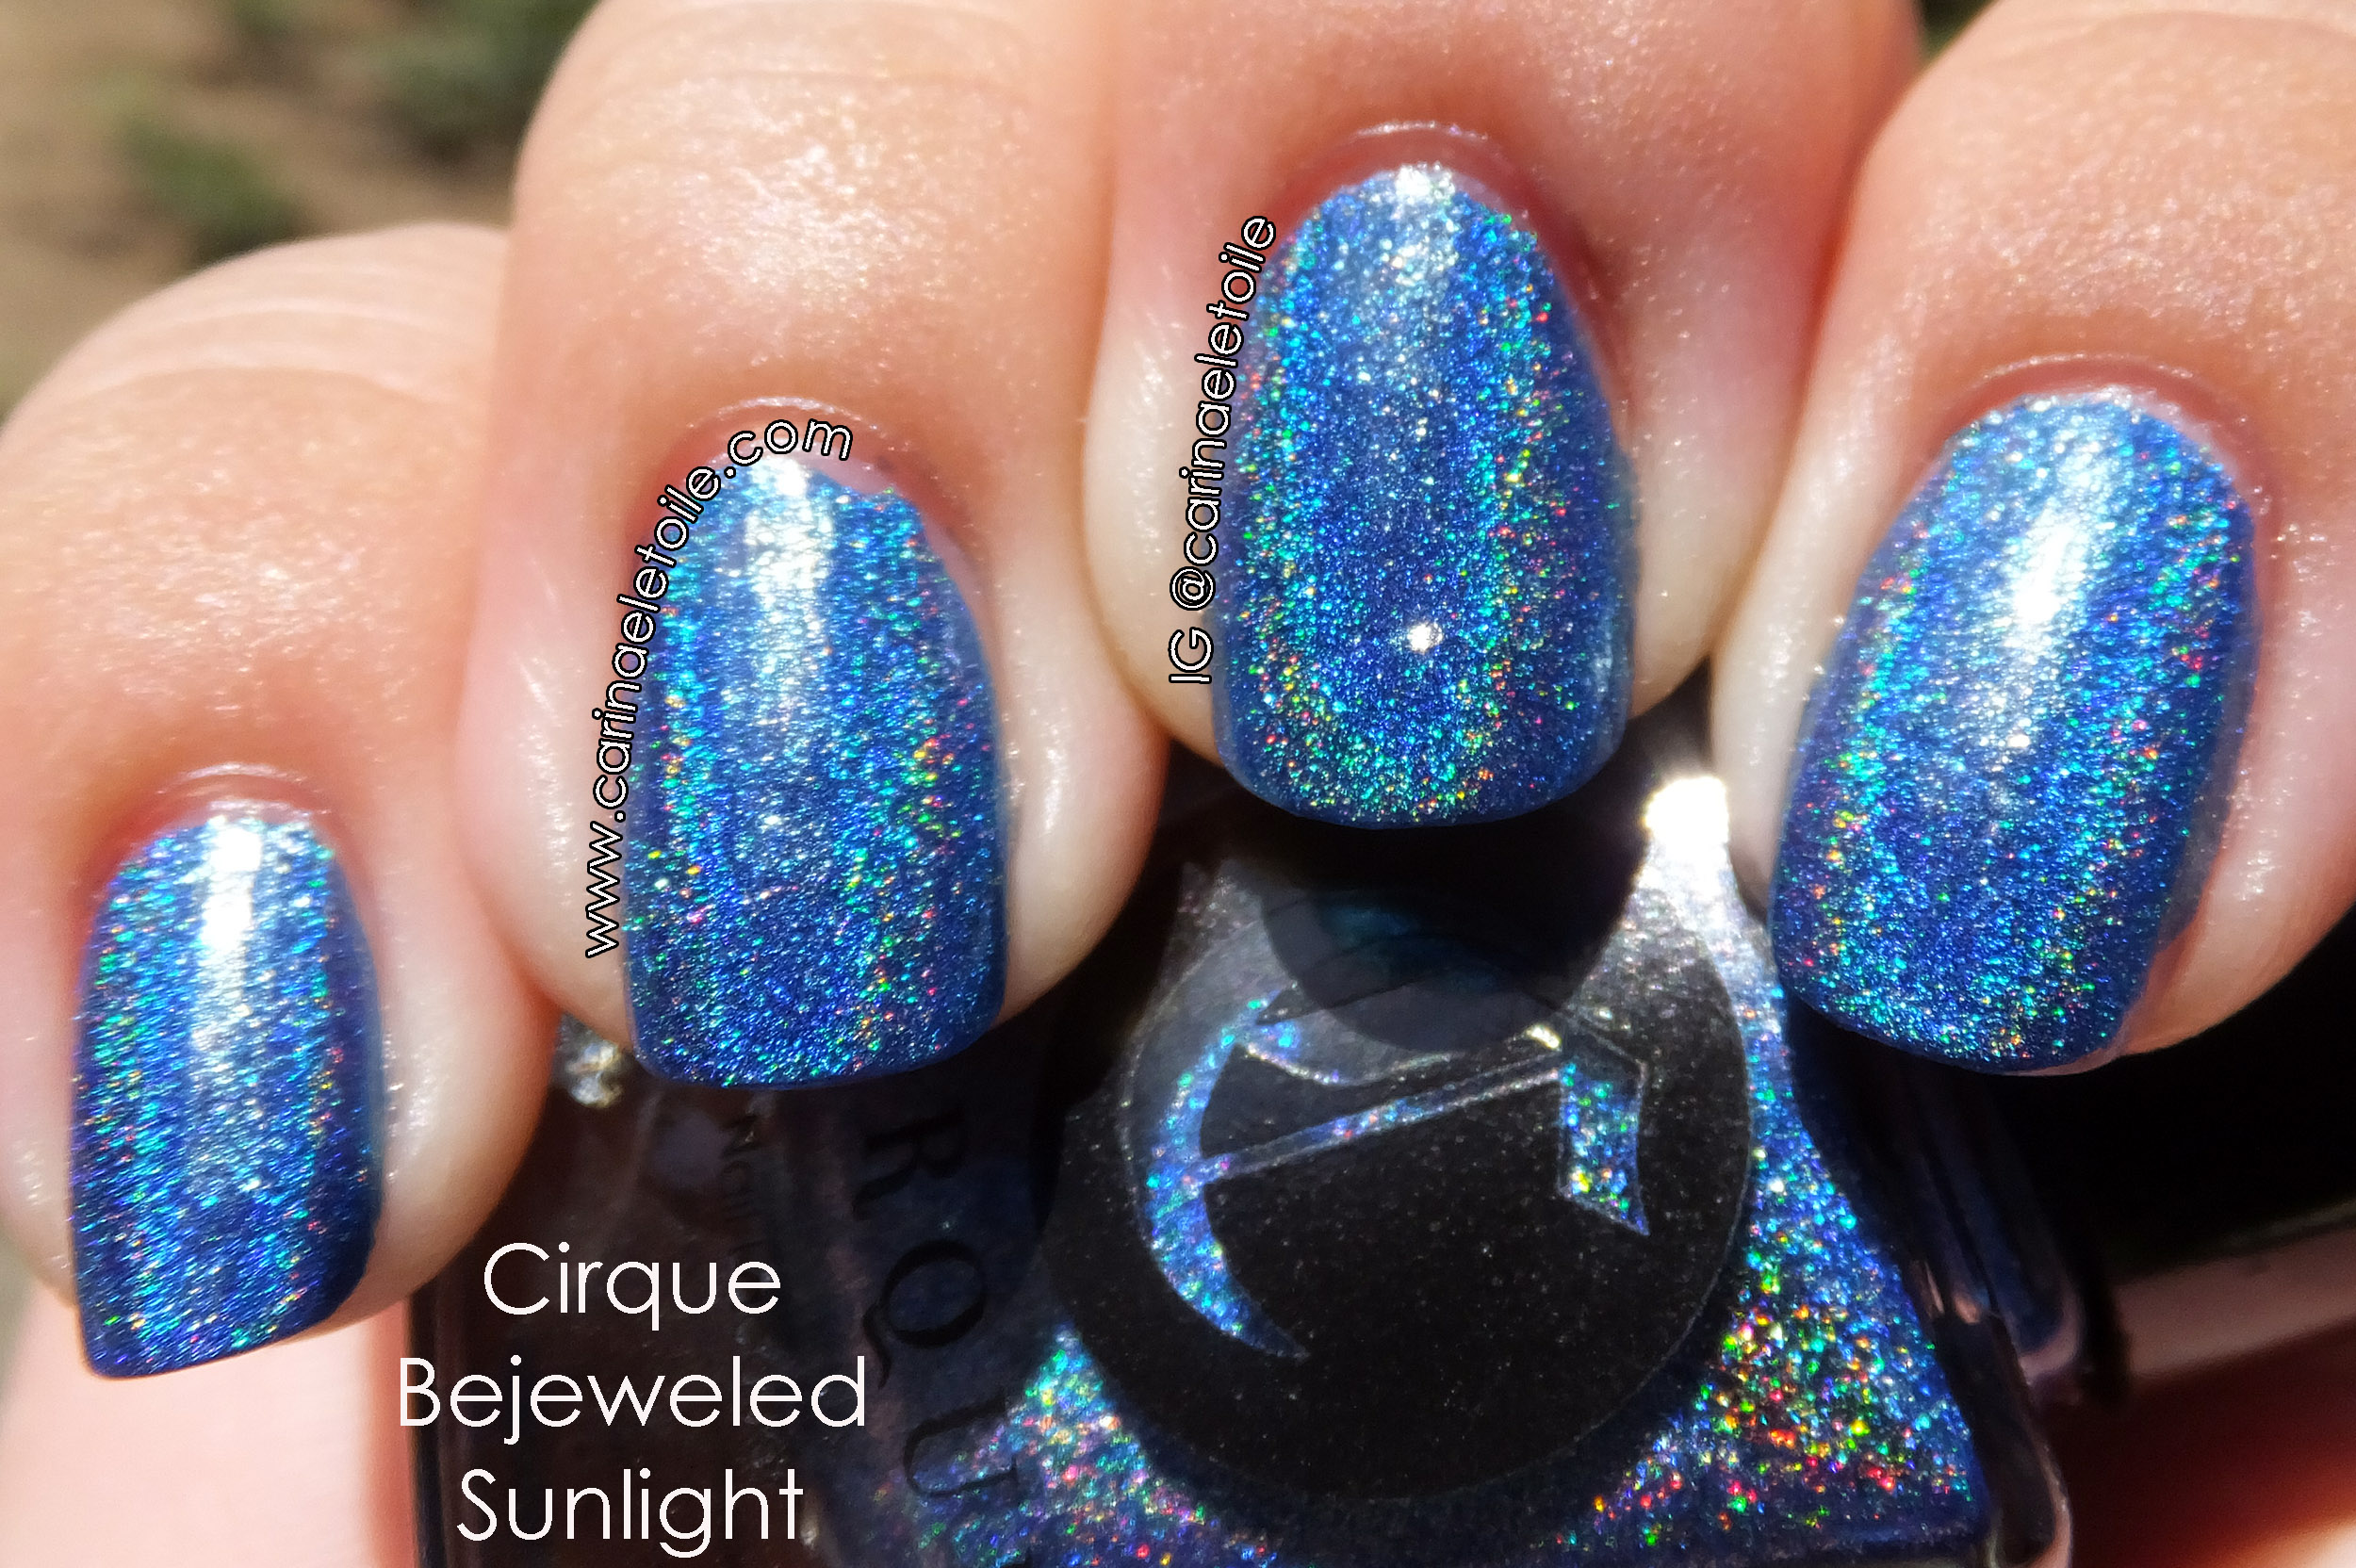 Cirque Bejeweled